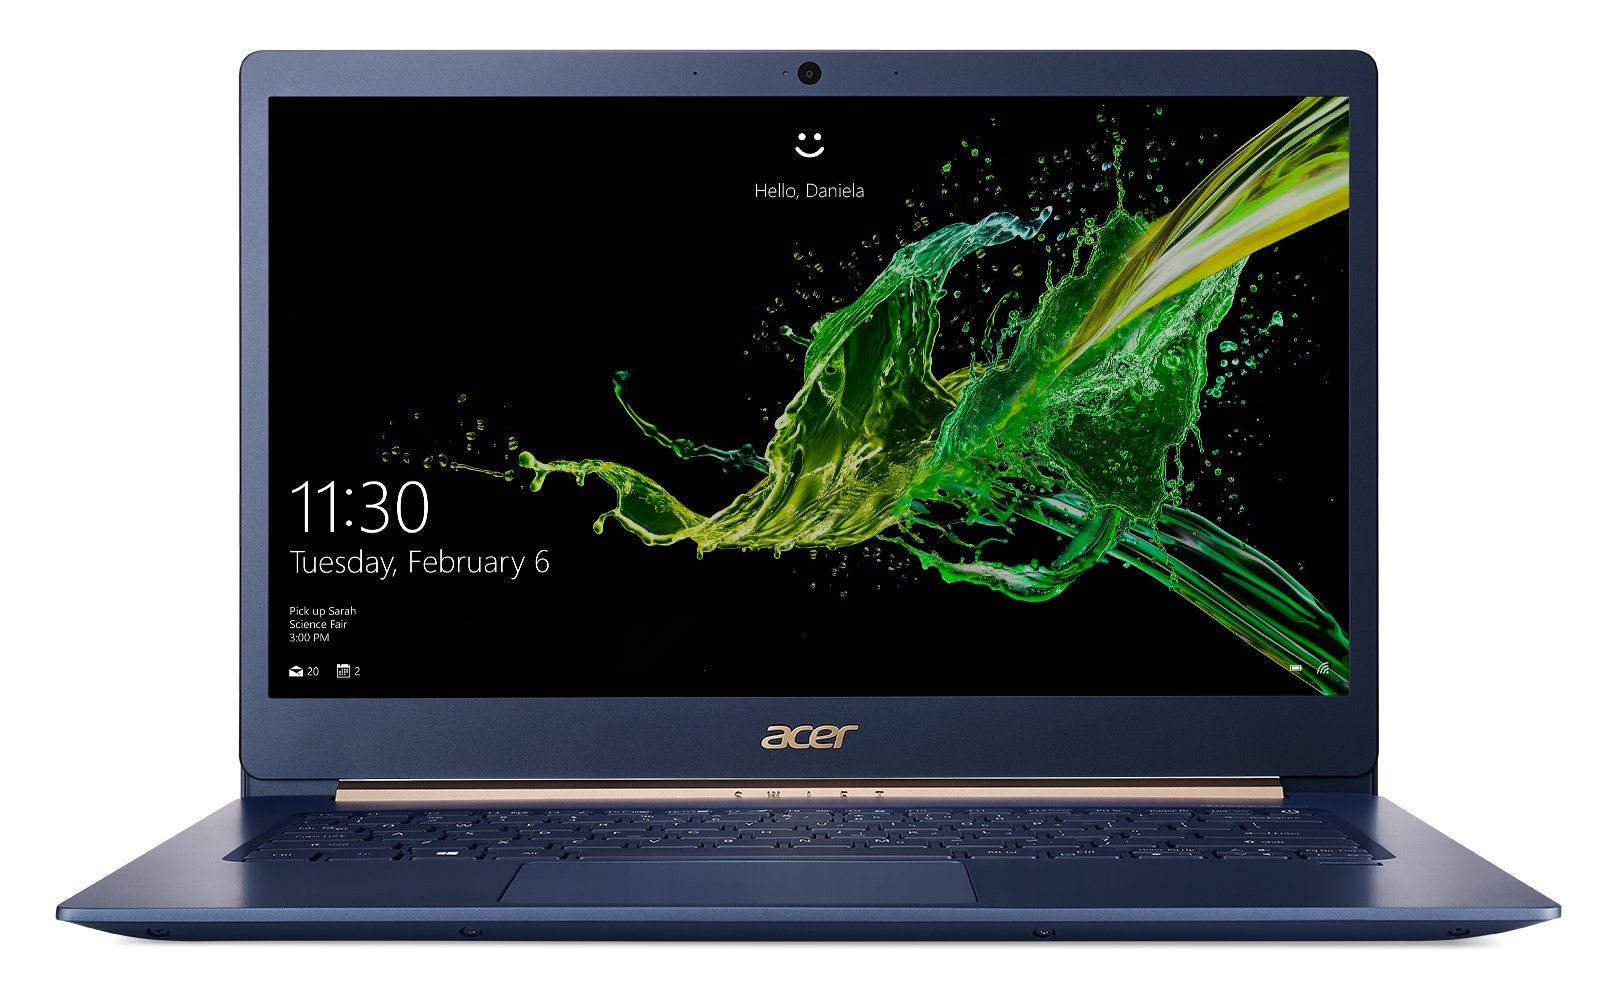 Das Acer Swift 5 14 Zoll in Blau